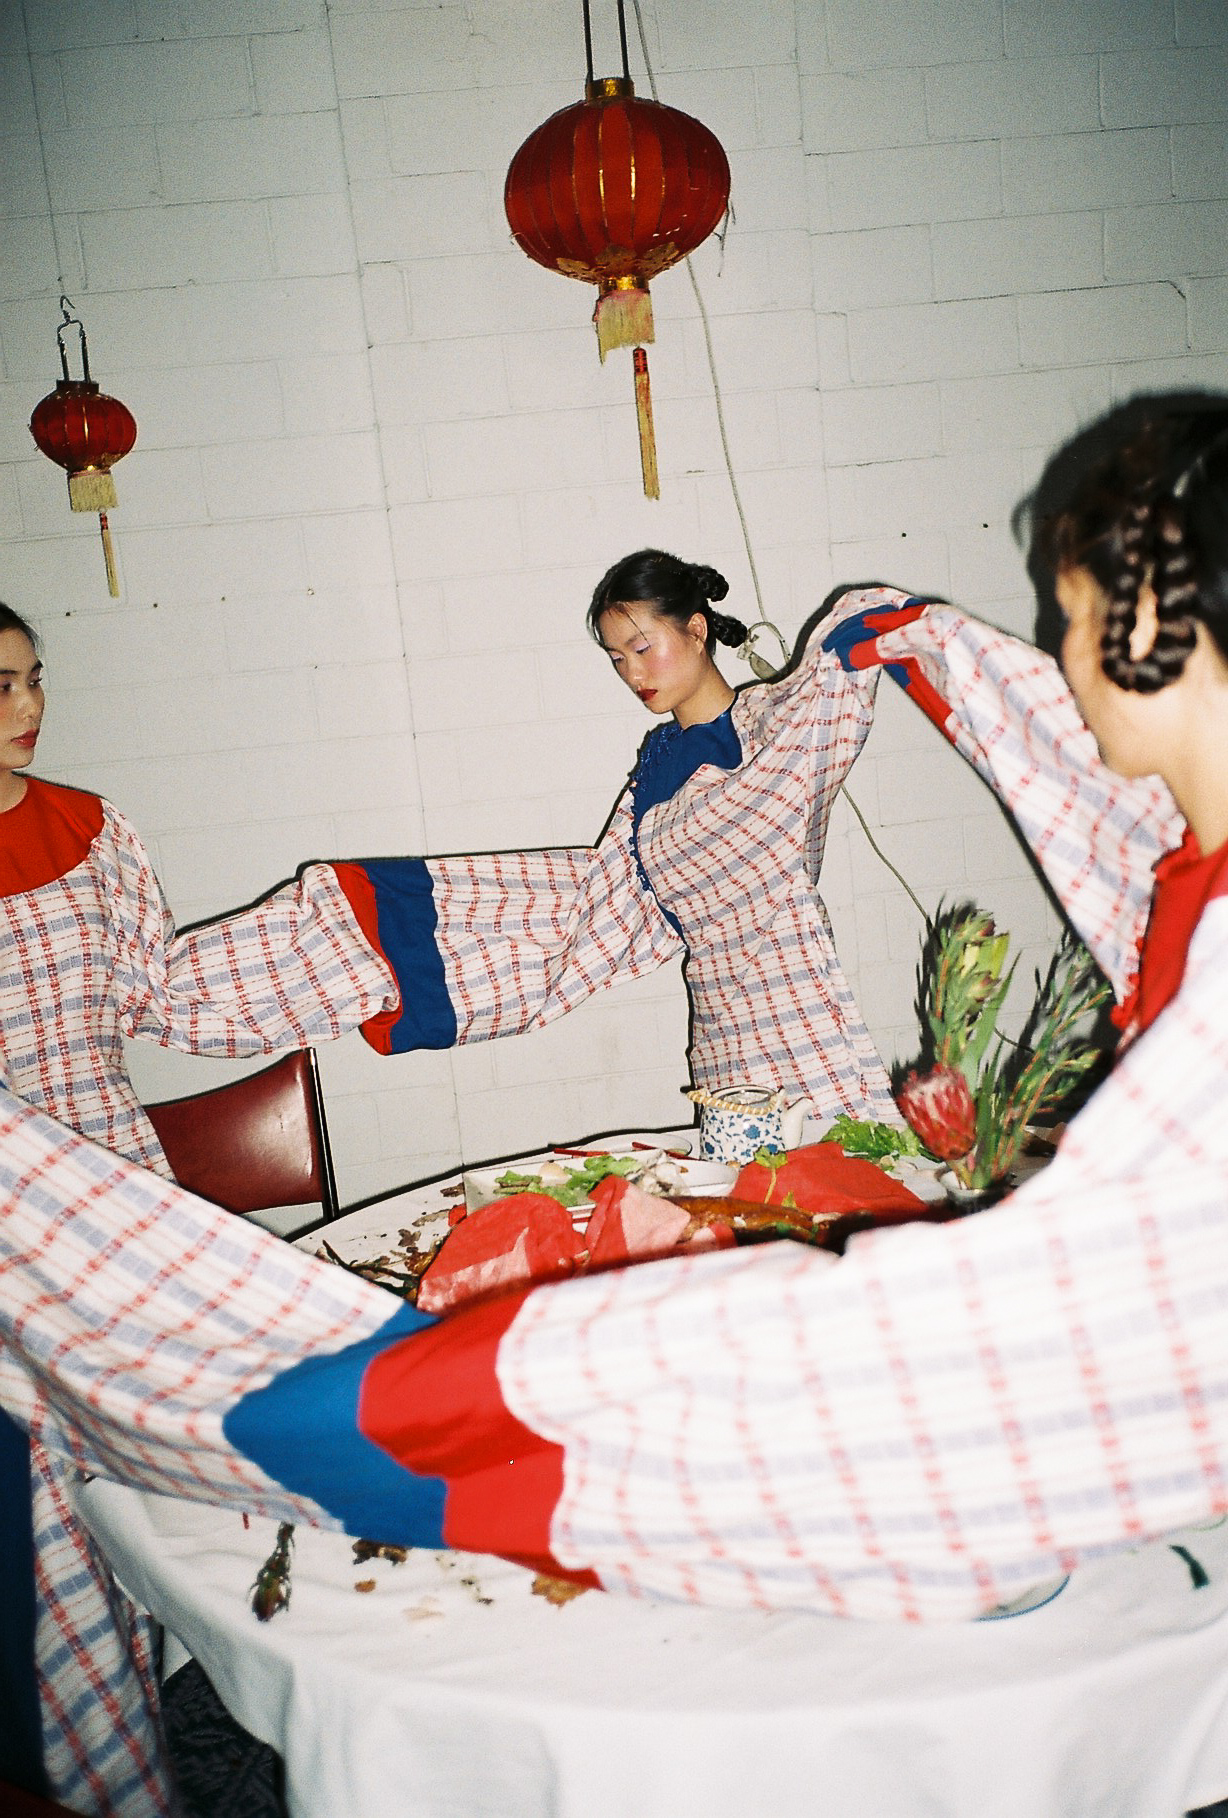 Photography by Ruby Jurecka